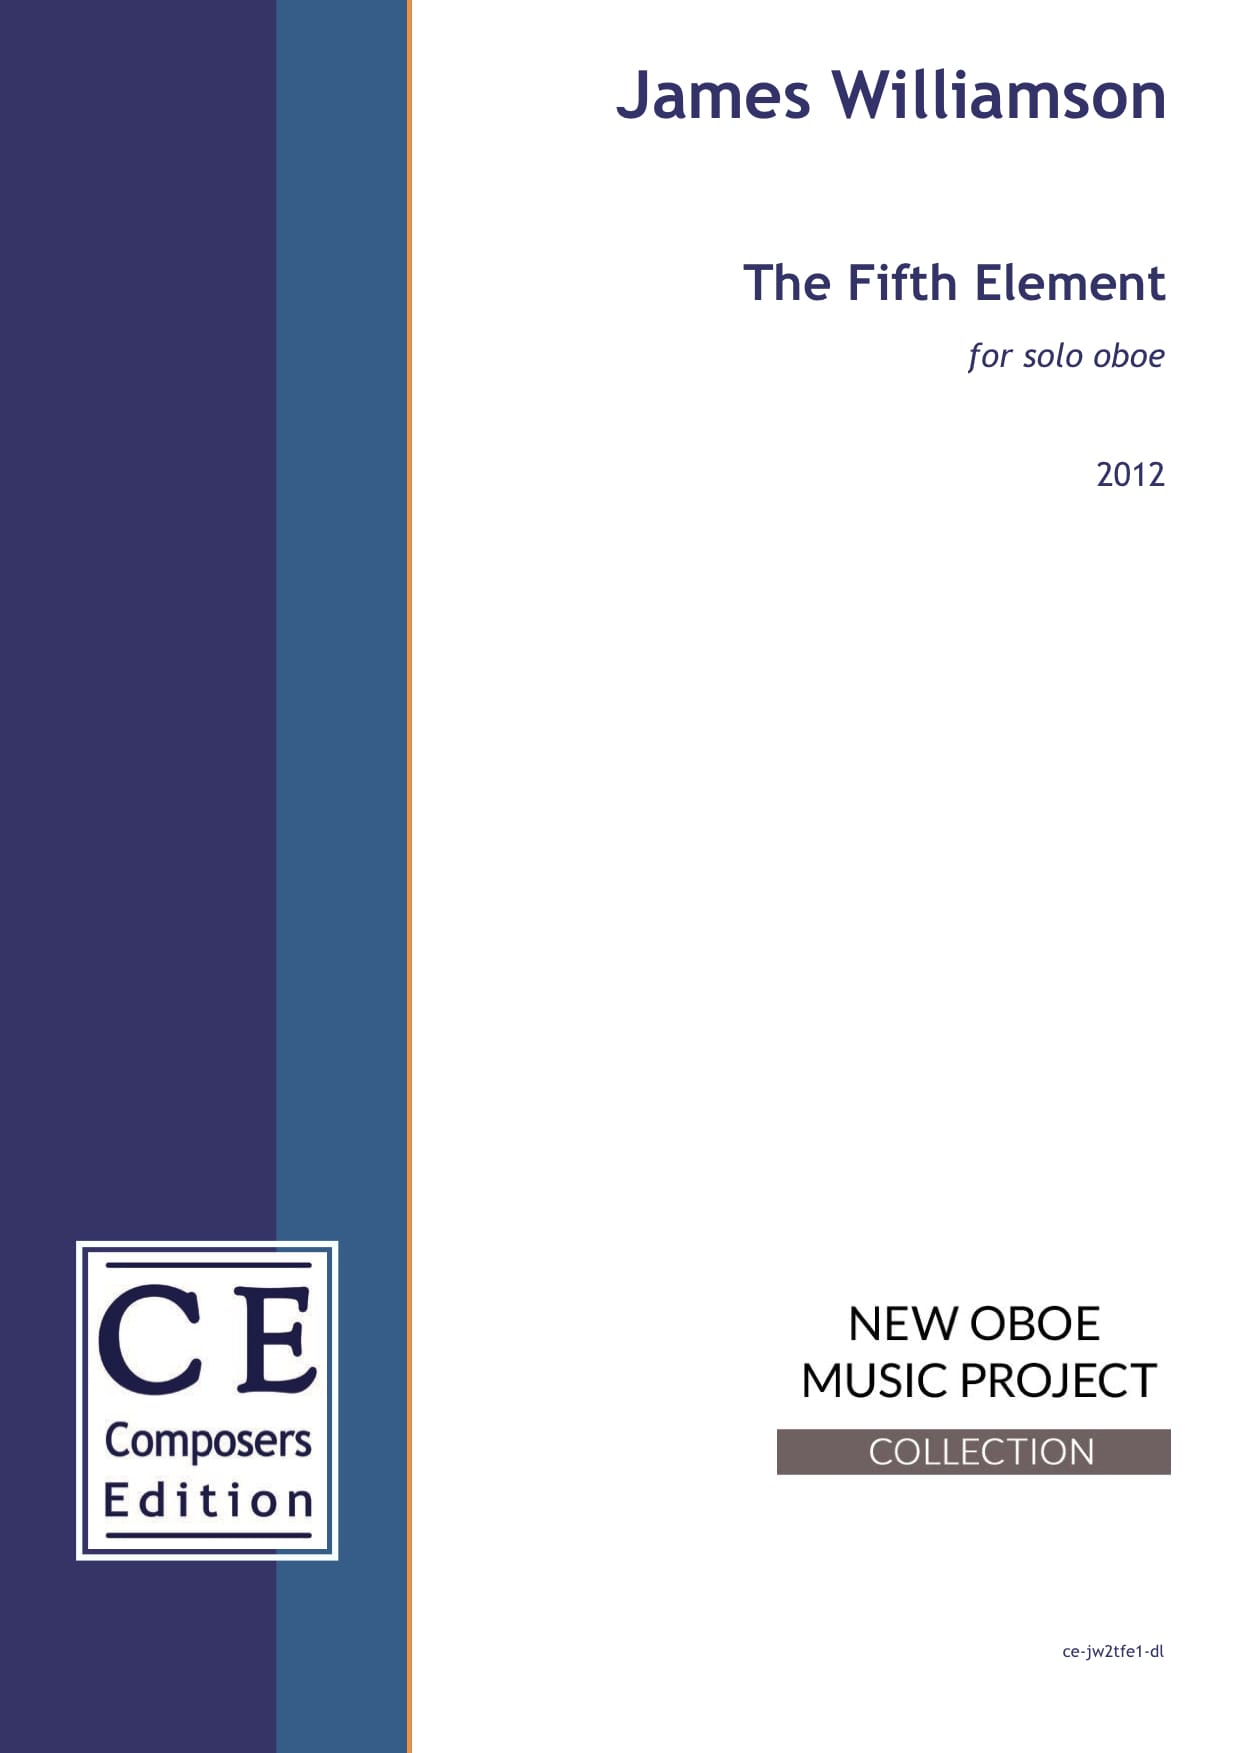 James Williamson: The Fifth Element for solo oboe